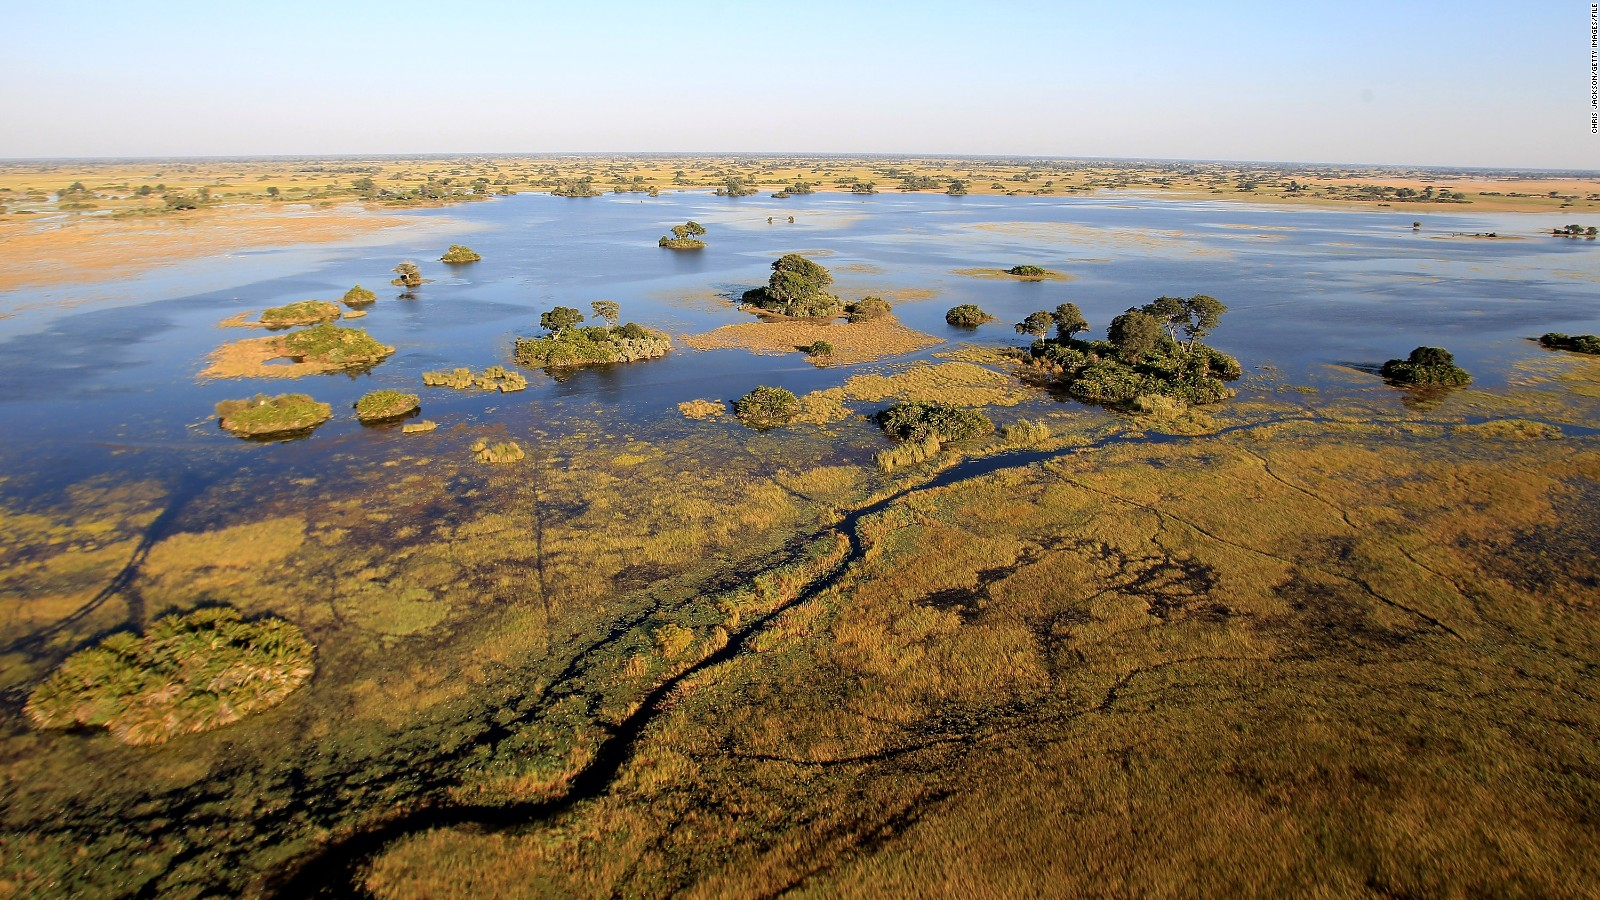 Exploring the Jewel of the Kalahari CNN Travel 1600x900